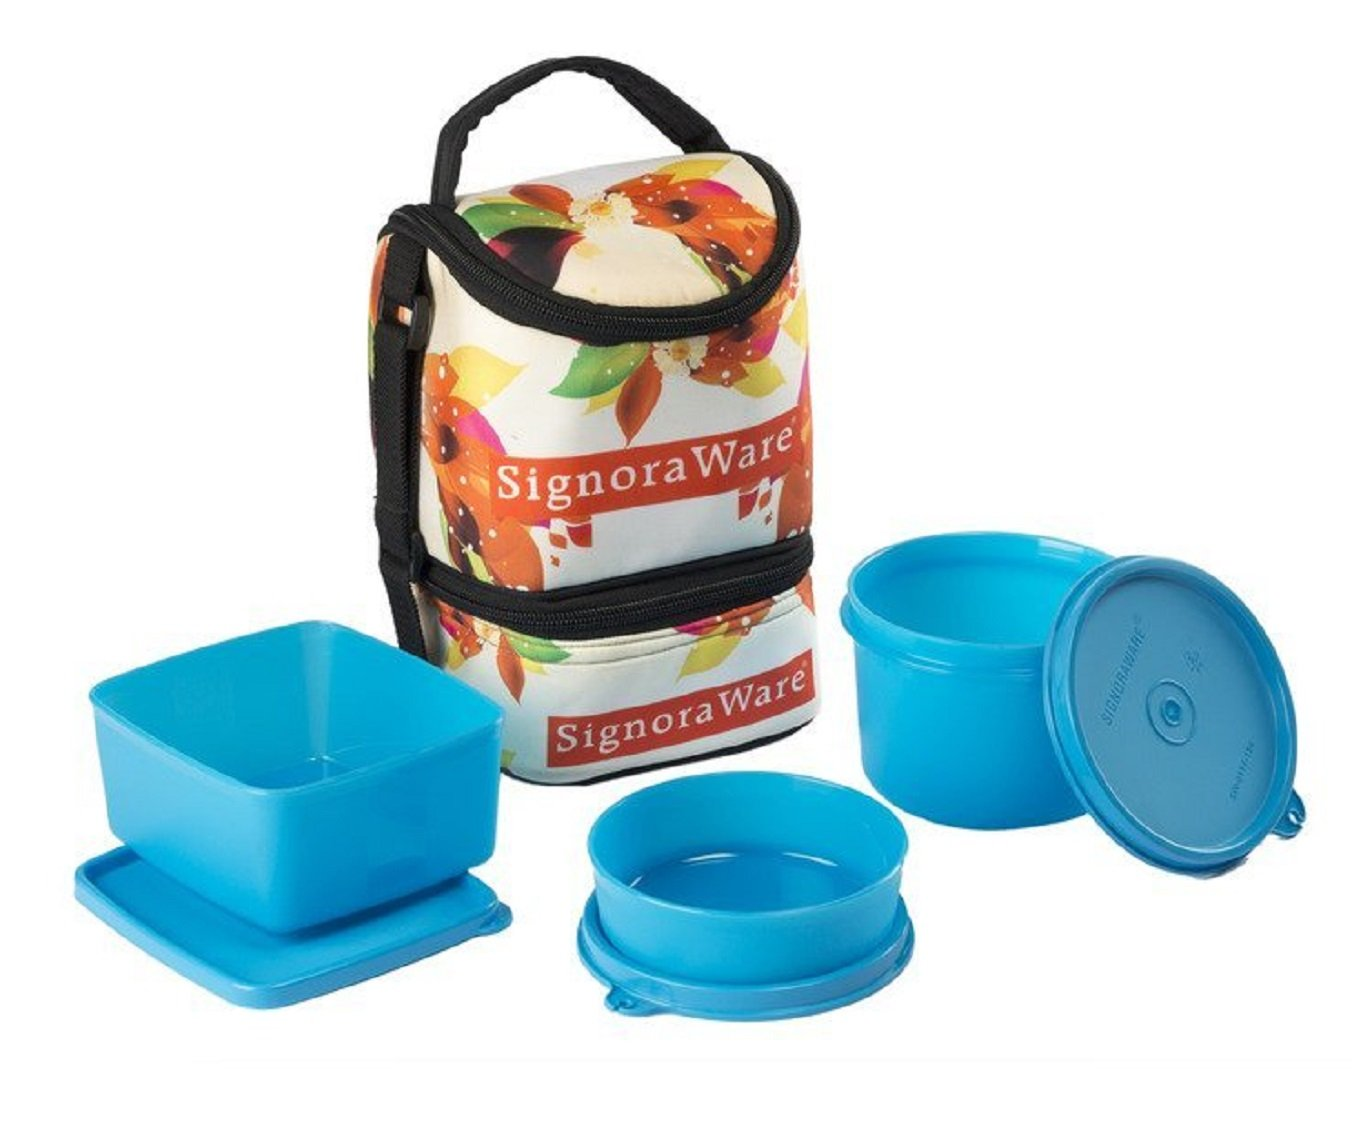 Signoraware Blossom Trio Lunch Box with Bag Set, 3-Pieces, Blue